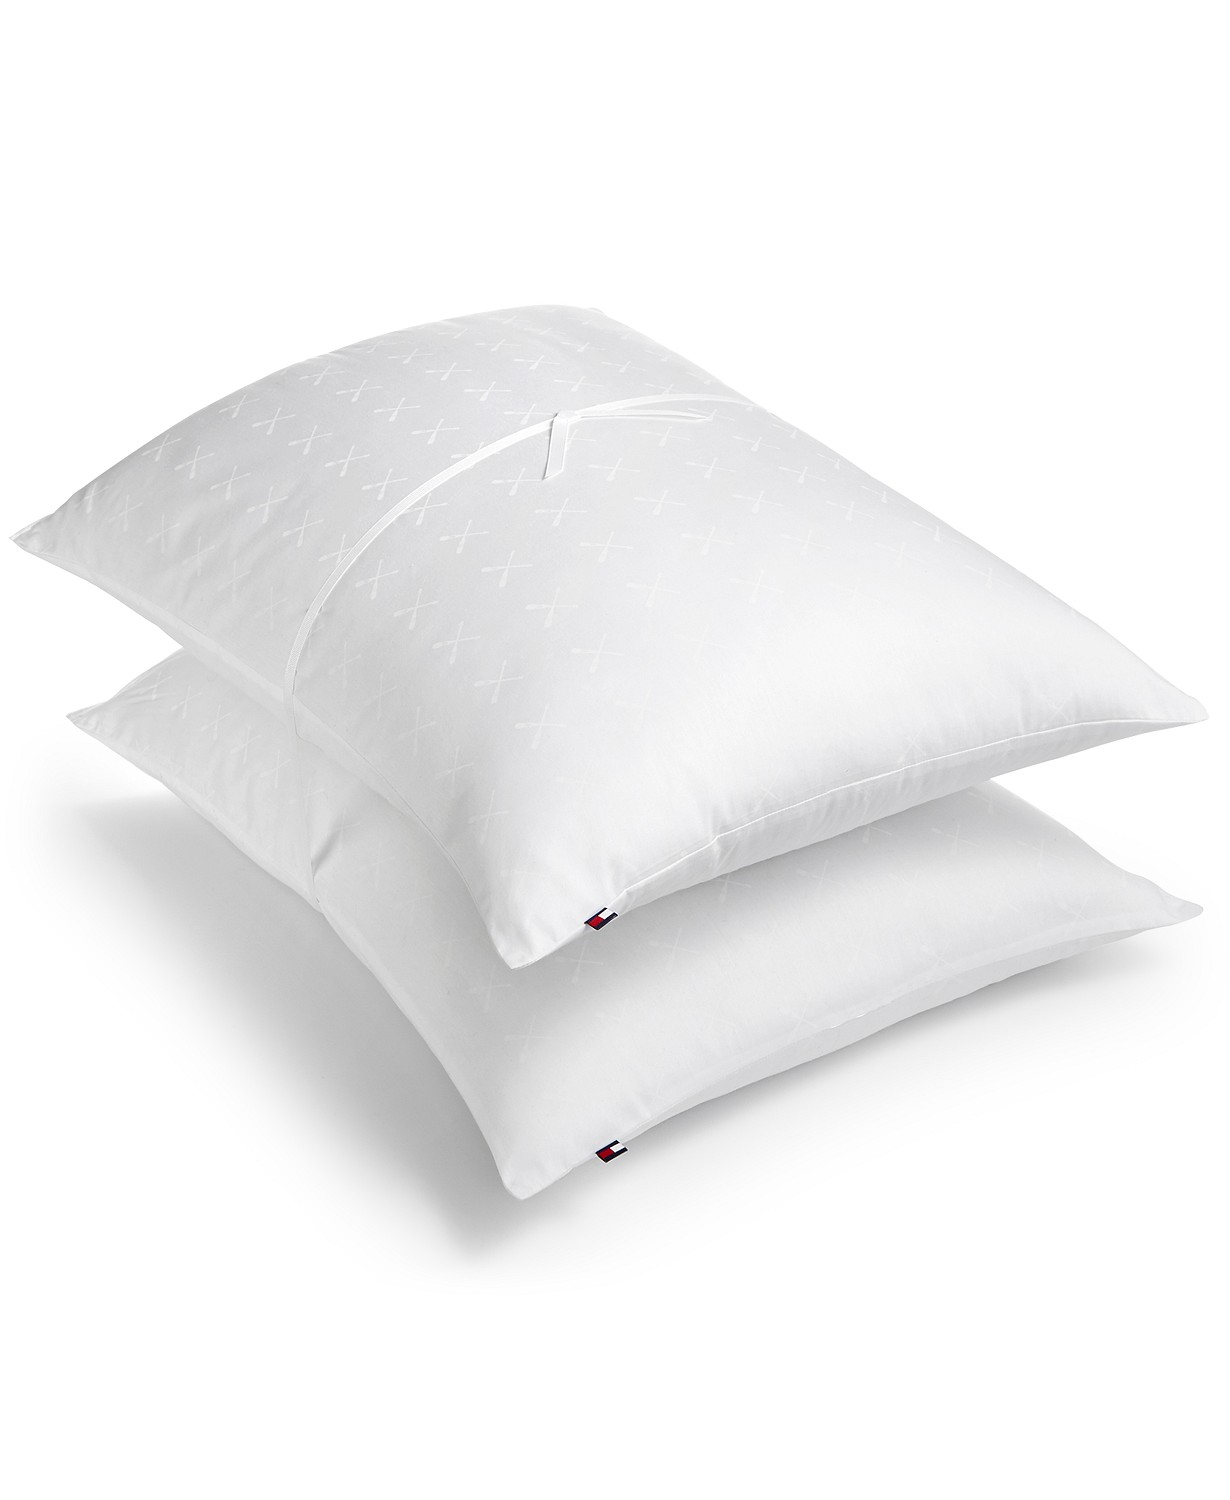 2-Pack Tommy Hilfiger Tonal Oars Pillow